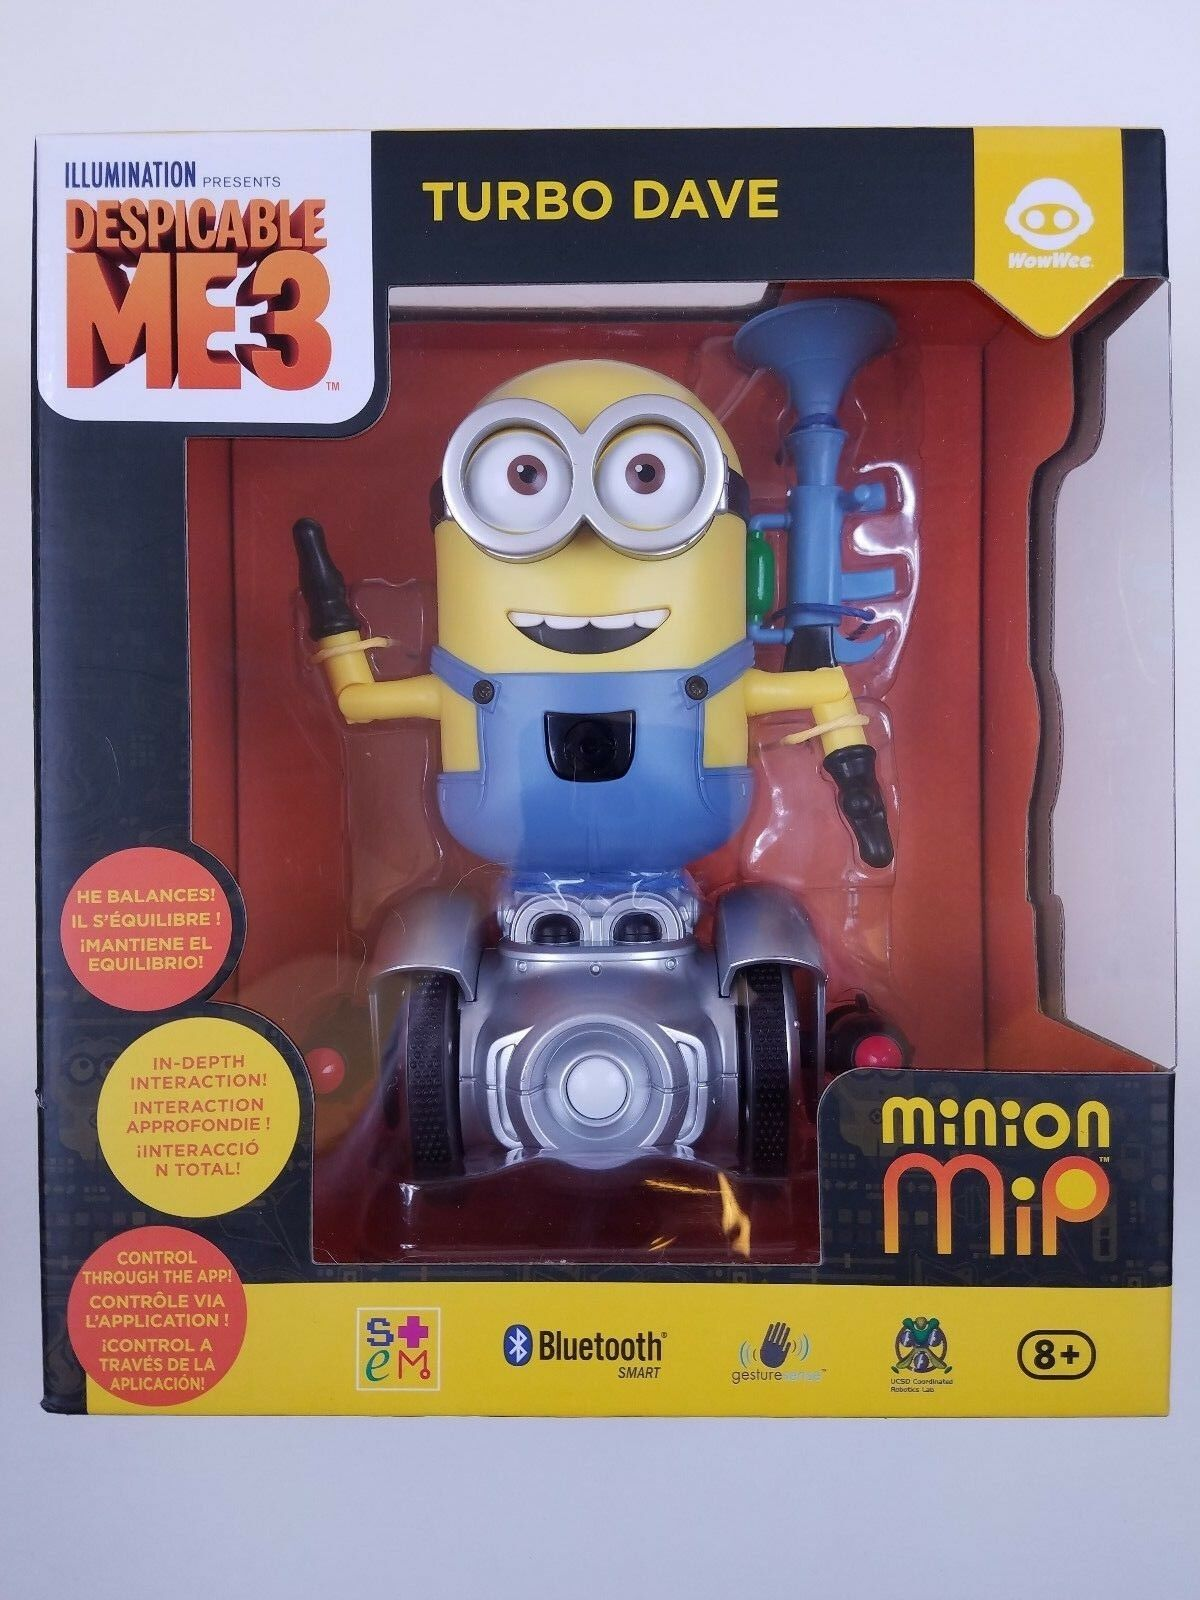 TURBO DAVE Despicable Me 3 Minions MiP WowWee - NEW  Blautooth Hand Gestures